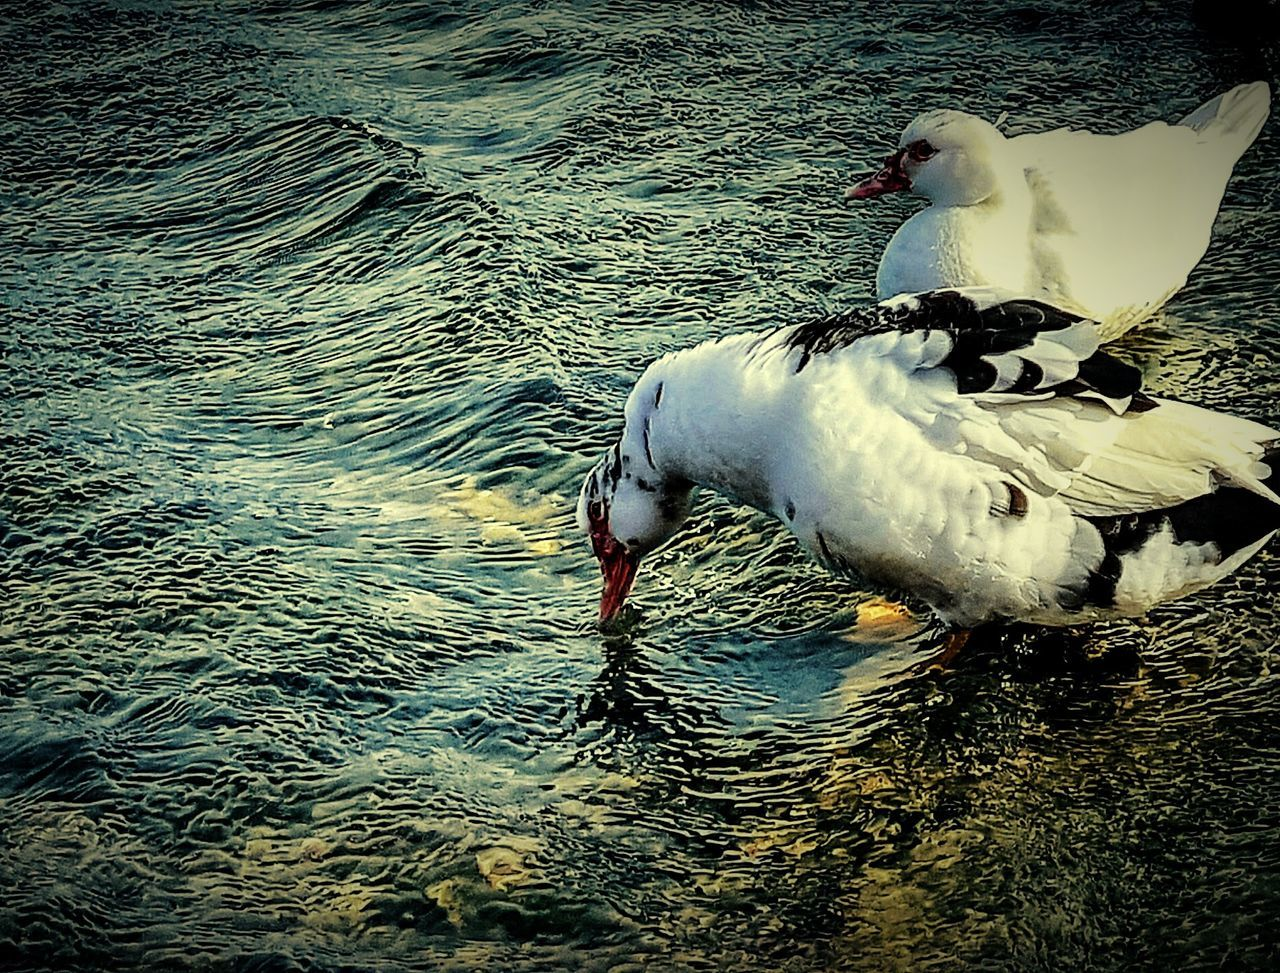 Bird Animals In The Wild Animal Themes Water Lake Animal Wildlife High Angle View No People One Animal Outdoors Day Nature Water Bird Lovephotography  Tranquility Españoles Y Sus Fotos Pets Beauty Love To Take Photos ❤ Personal Perspective Scenics Beauty In Nature Innocence EyeEmBestPics Color Of Life